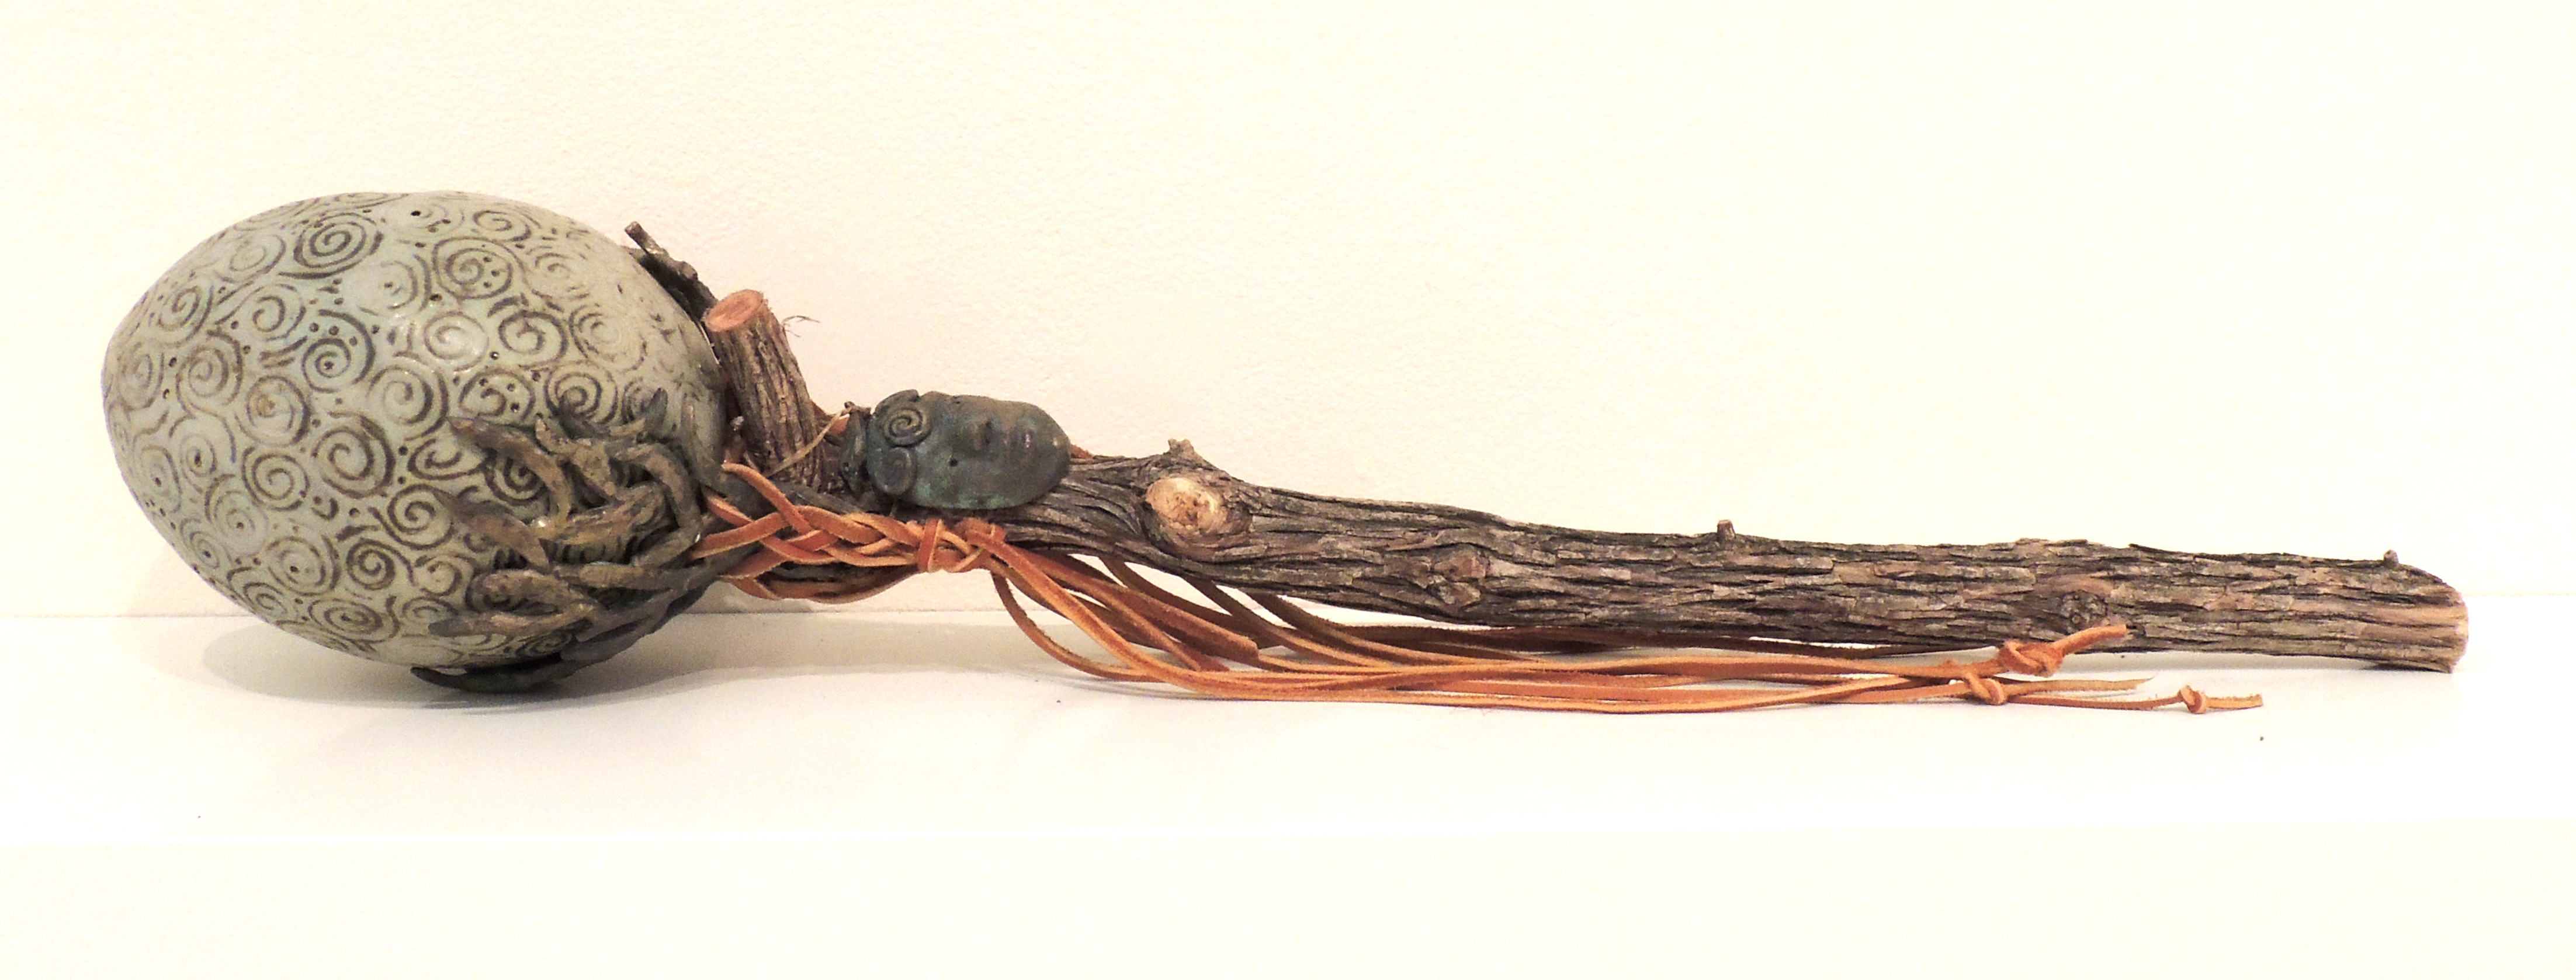 Bob Coates | FERTILITY WAND | clay, bronze, wood, leather